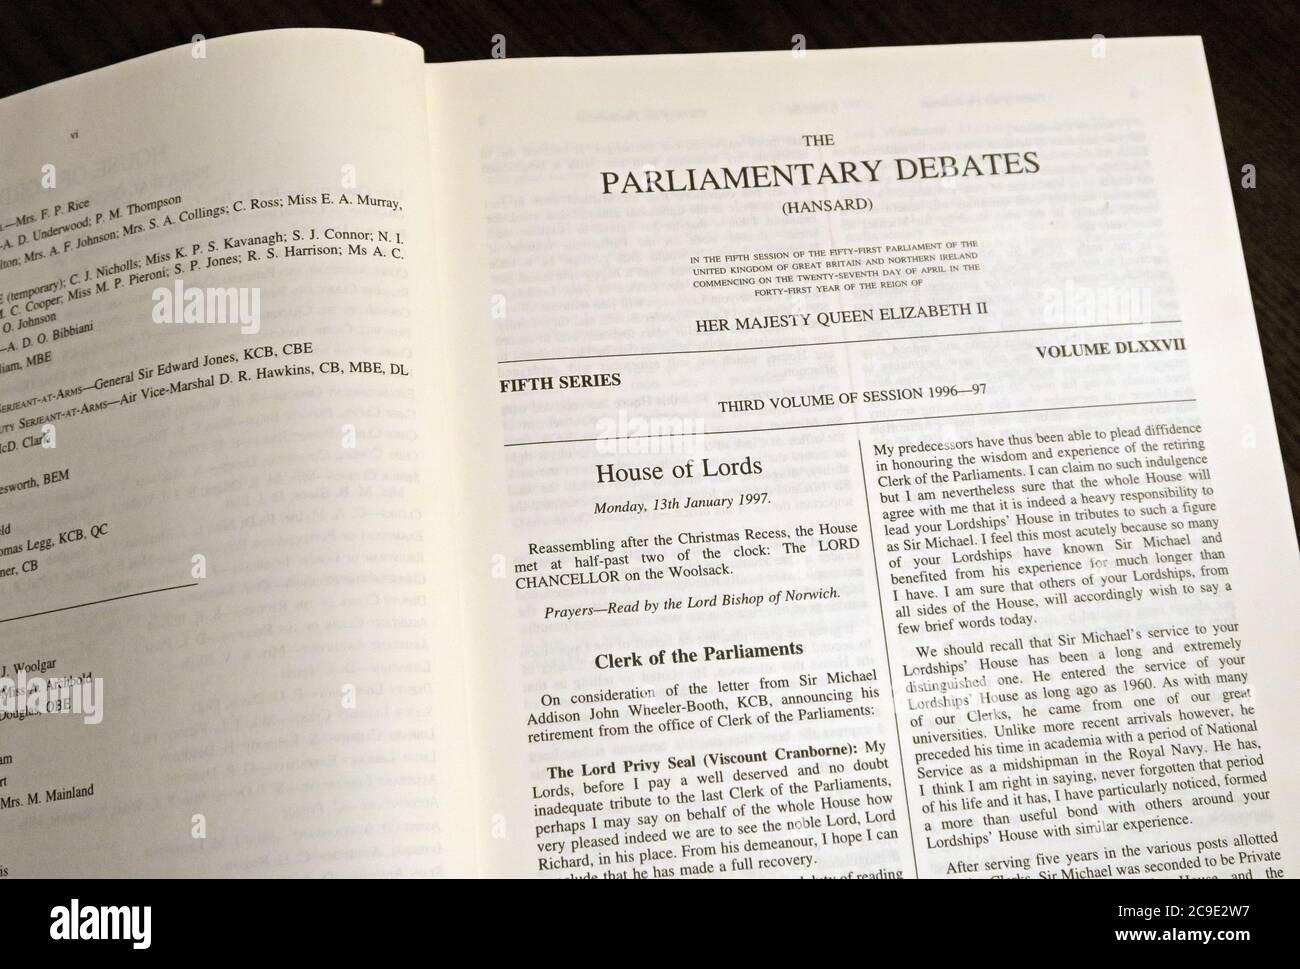 GoTonySmith,HotpixUK,@HotpixUK,England,UK,British,Great Britain,London,House of Lords,Lords,chamber,Official report,Vol 545,books,volumes,volume